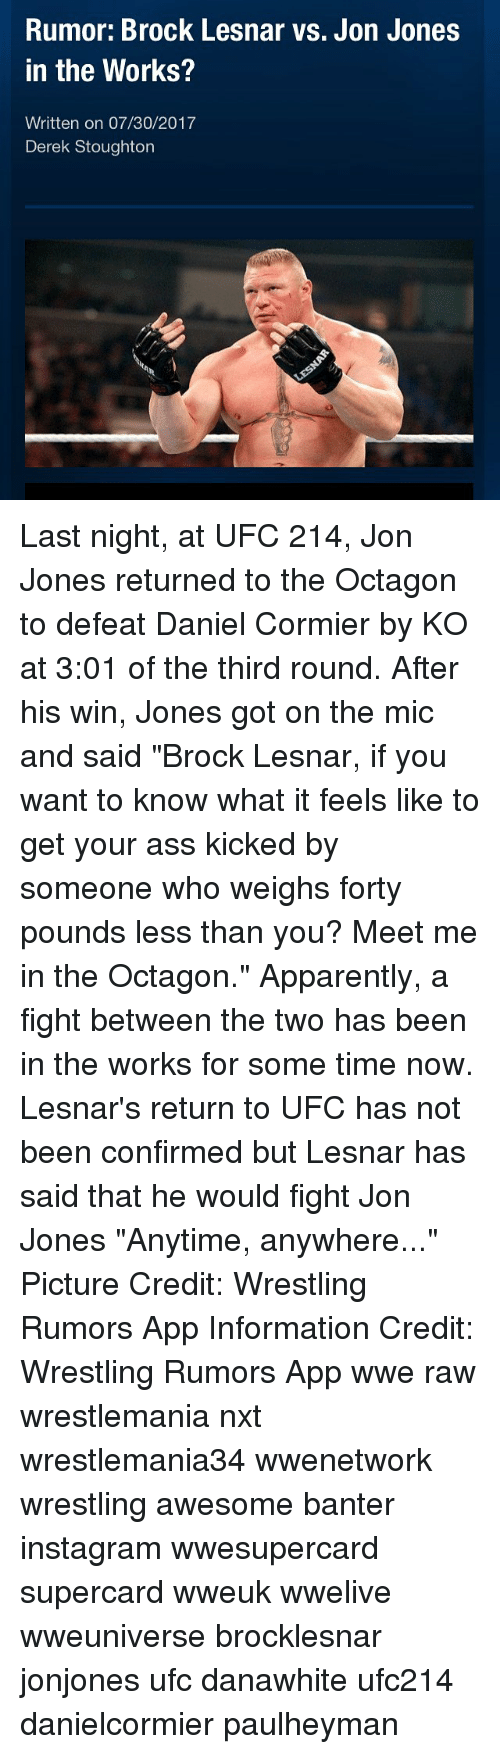 "Apparently, Ass, and Instagram: Rumor: Brock Lesnar vs. Jon Jones  in the Works?  Written on 07/30/2017  Derek Stoughton Last night, at UFC 214, Jon Jones returned to the Octagon to defeat Daniel Cormier by KO at 3:01 of the third round. After his win, Jones got on the mic and said ""Brock Lesnar, if you want to know what it feels like to get your ass kicked by someone who weighs forty pounds less than you? Meet me in the Octagon."" Apparently, a fight between the two has been in the works for some time now. Lesnar's return to UFC has not been confirmed but Lesnar has said that he would fight Jon Jones ""Anytime, anywhere..."" Picture Credit: Wrestling Rumors App Information Credit: Wrestling Rumors App wwe raw wrestlemania nxt wrestlemania34 wwenetwork wrestling awesome banter instagram wwesupercard supercard wweuk wwelive wweuniverse brocklesnar jonjones ufc danawhite ufc214 danielcormier paulheyman"